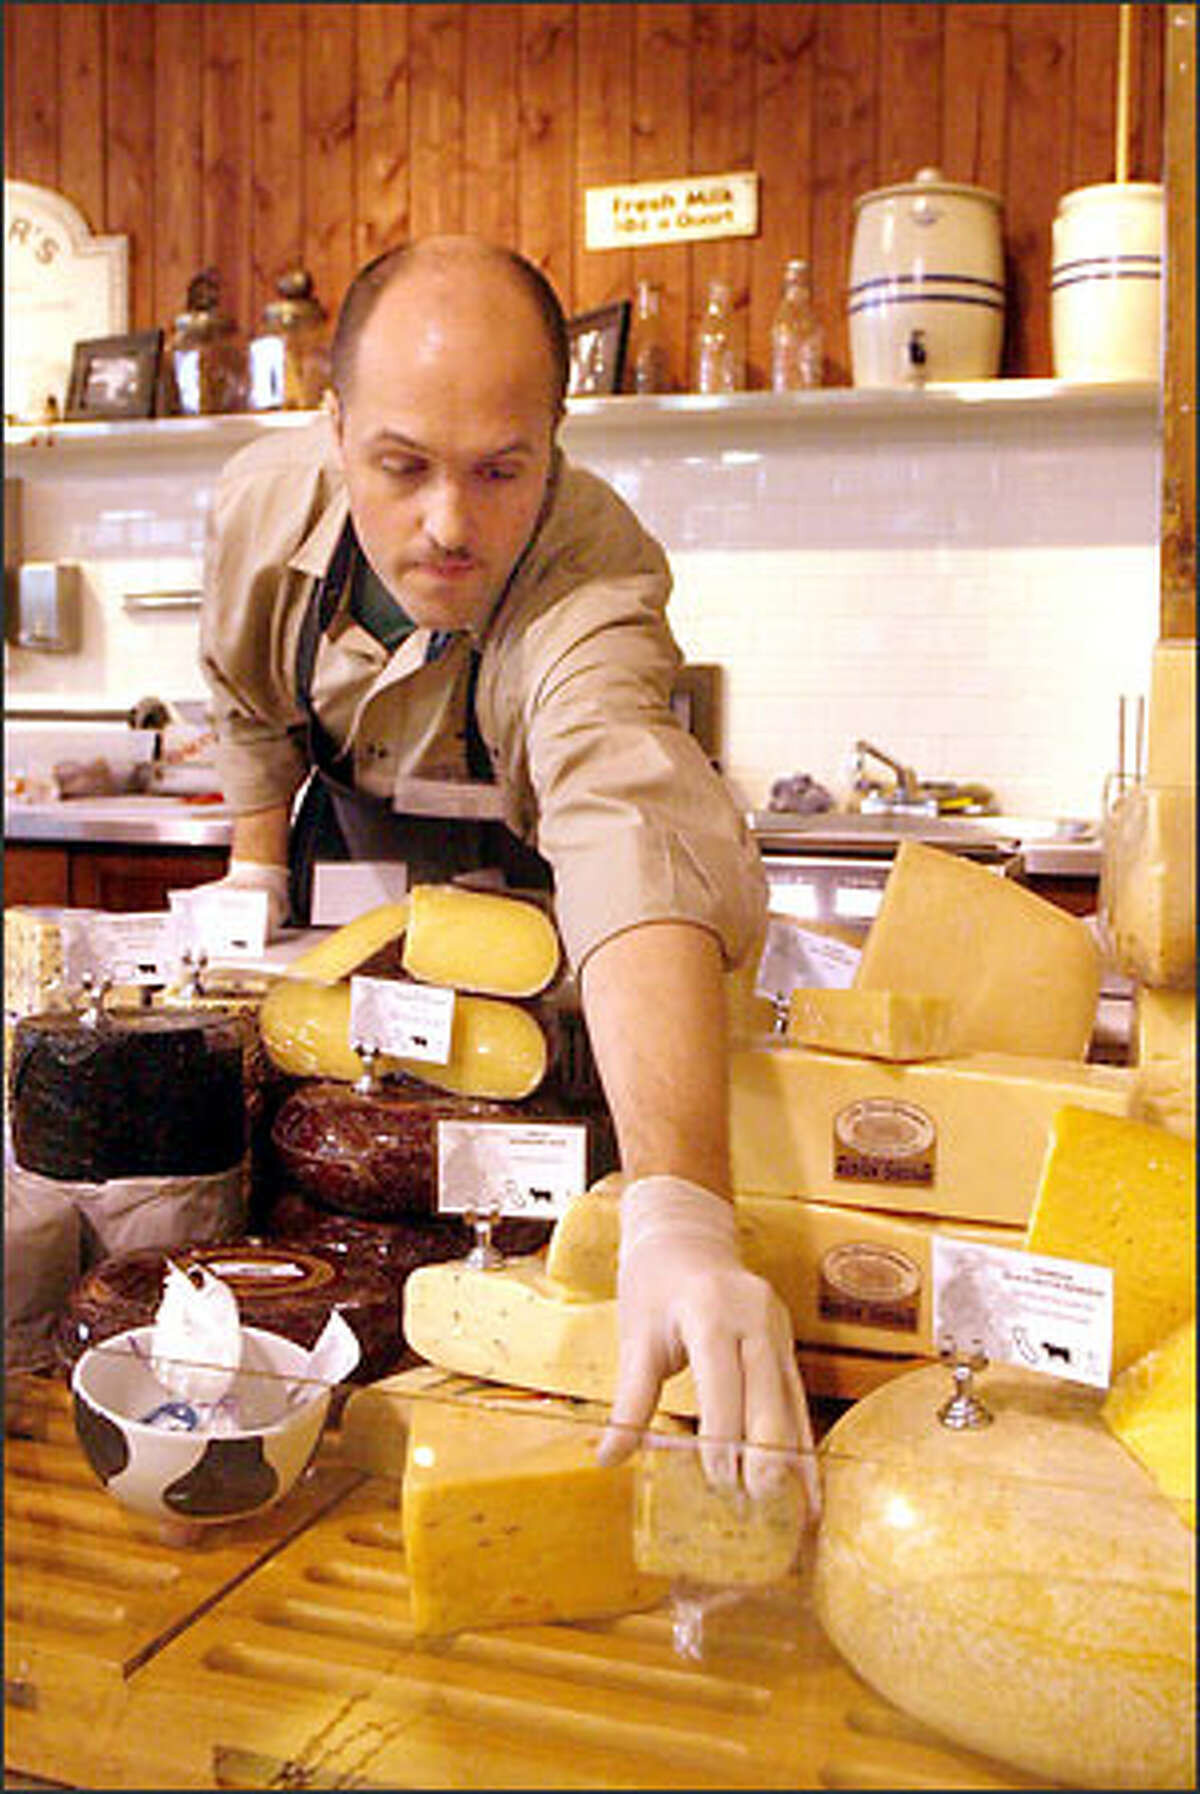 Cheesemonger Dean Volker loads a display case at Beecher's. Everything edible in the shop is